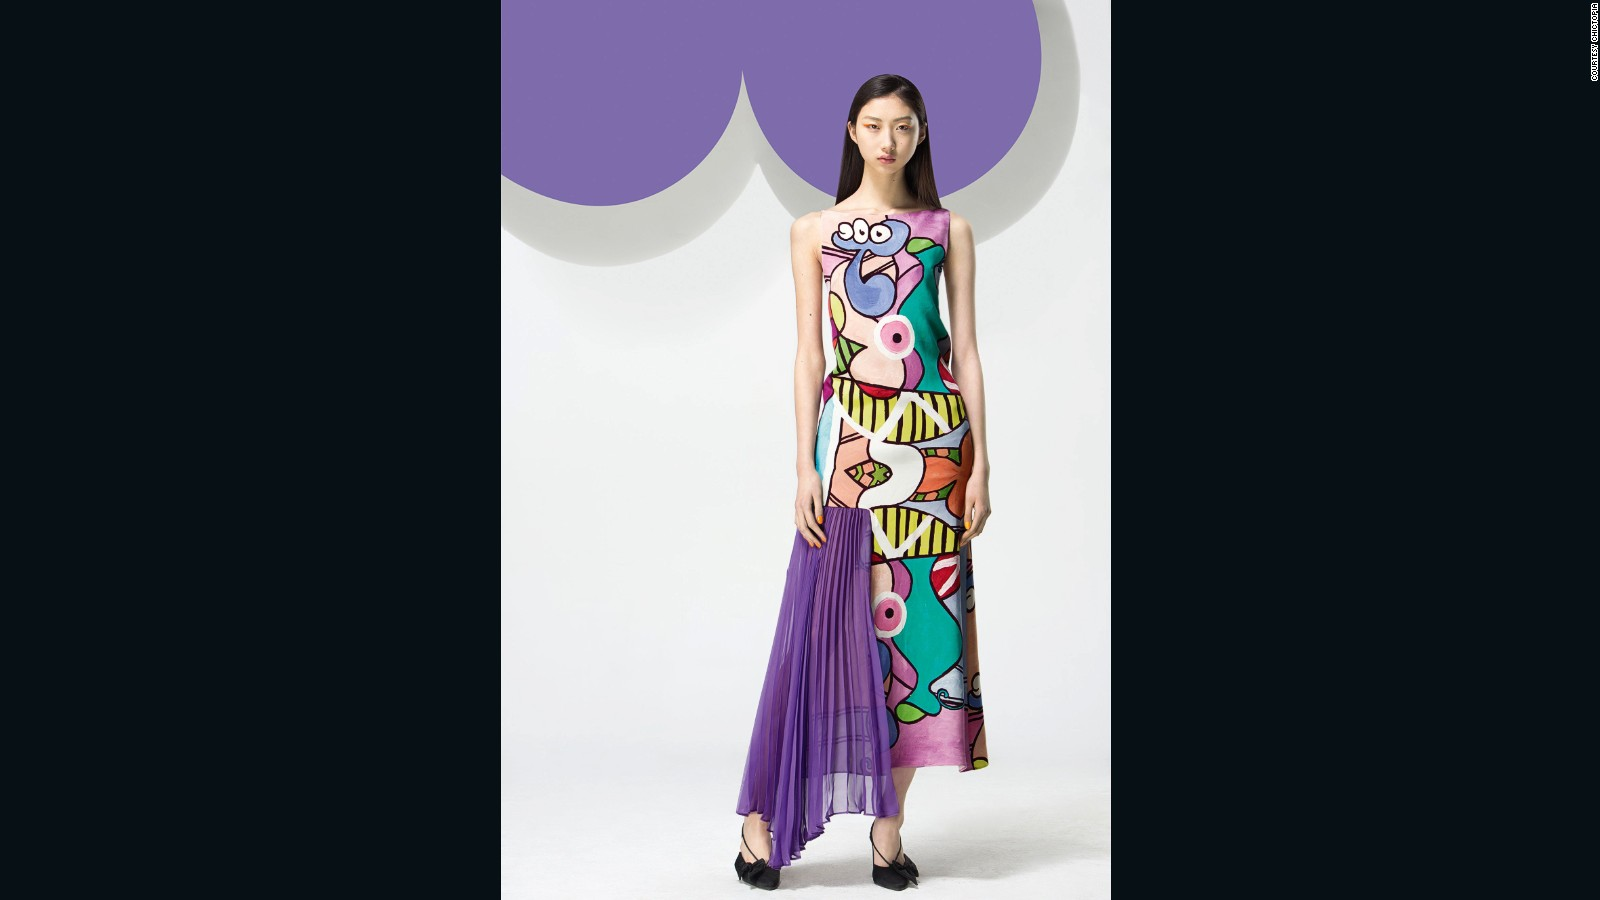 The great catwalk of china radical new designers style jpg 1600x900 Dress  fashion design from china 2fcae3112